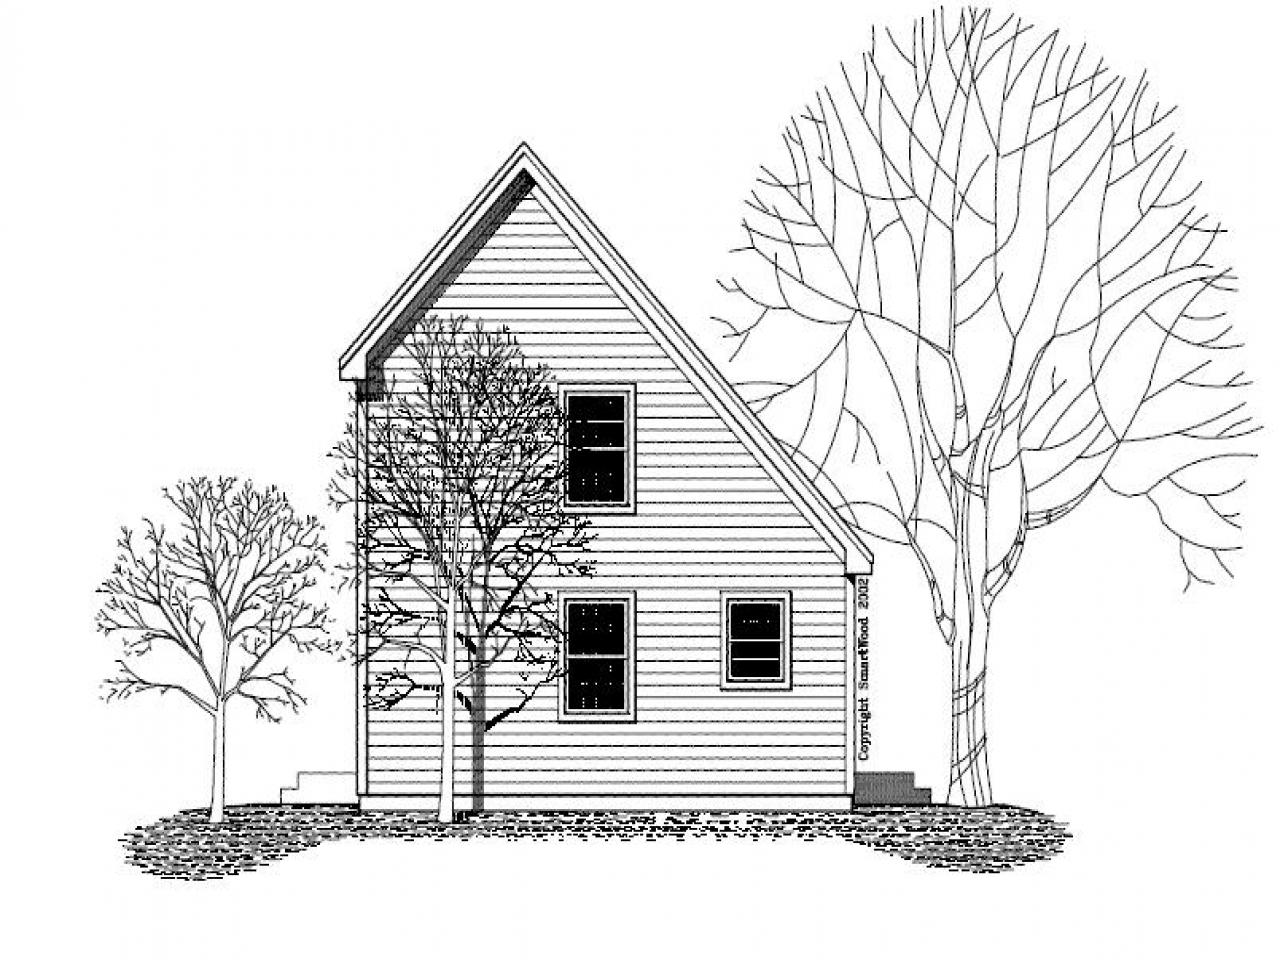 1280x960 Two Story Saltbox House Plans Christmas Ideas,